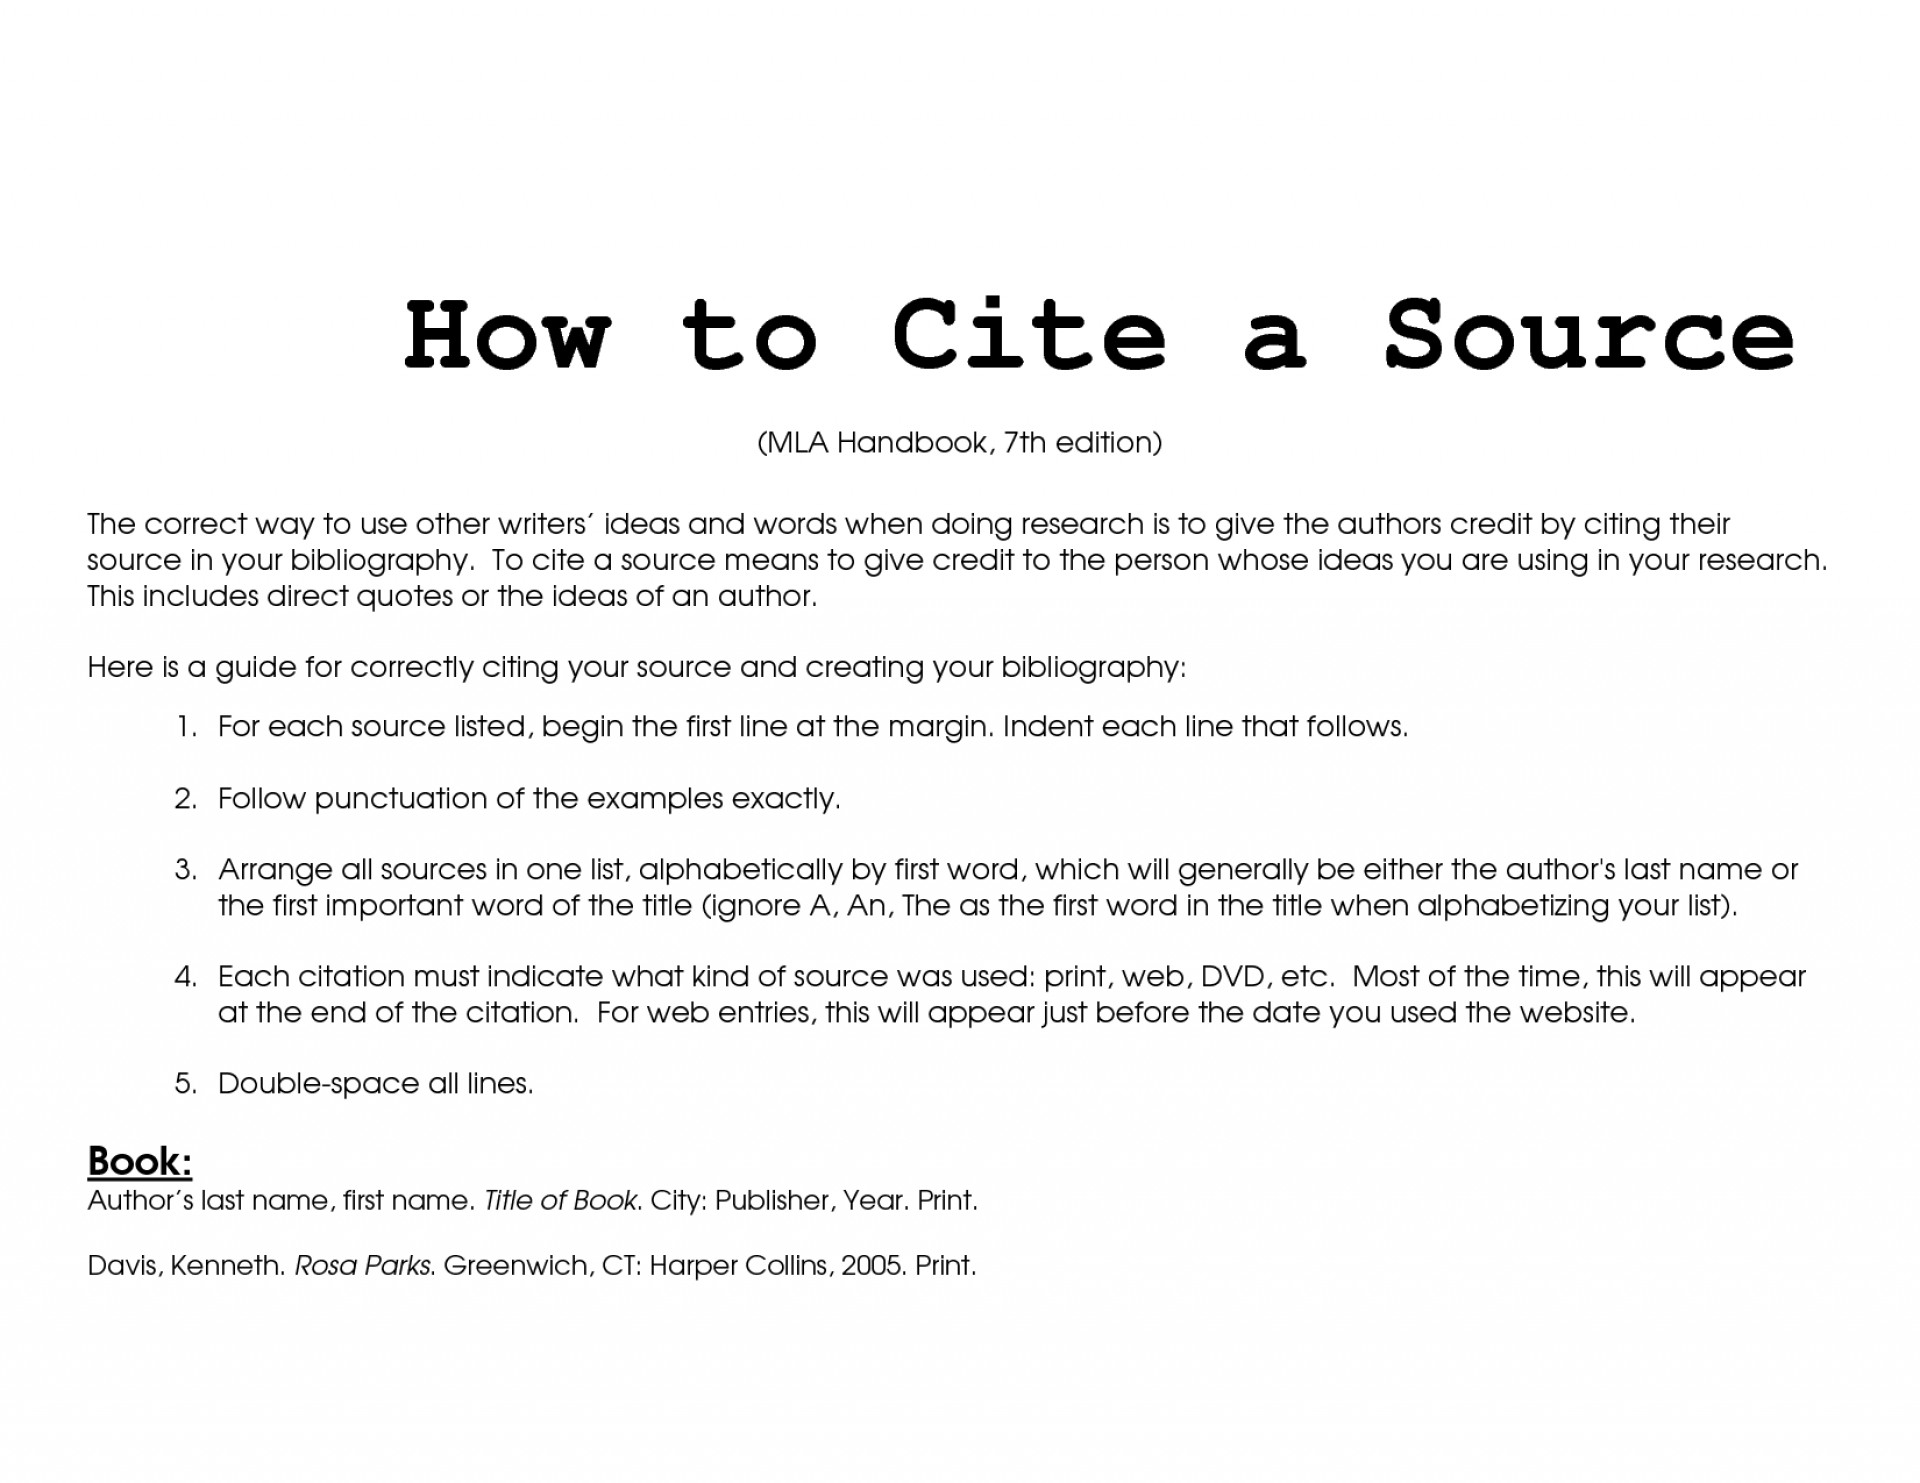 001 Research Paper Mla Citing Sources Unusual In Paragraph How To Cite A Source Format Same 1920